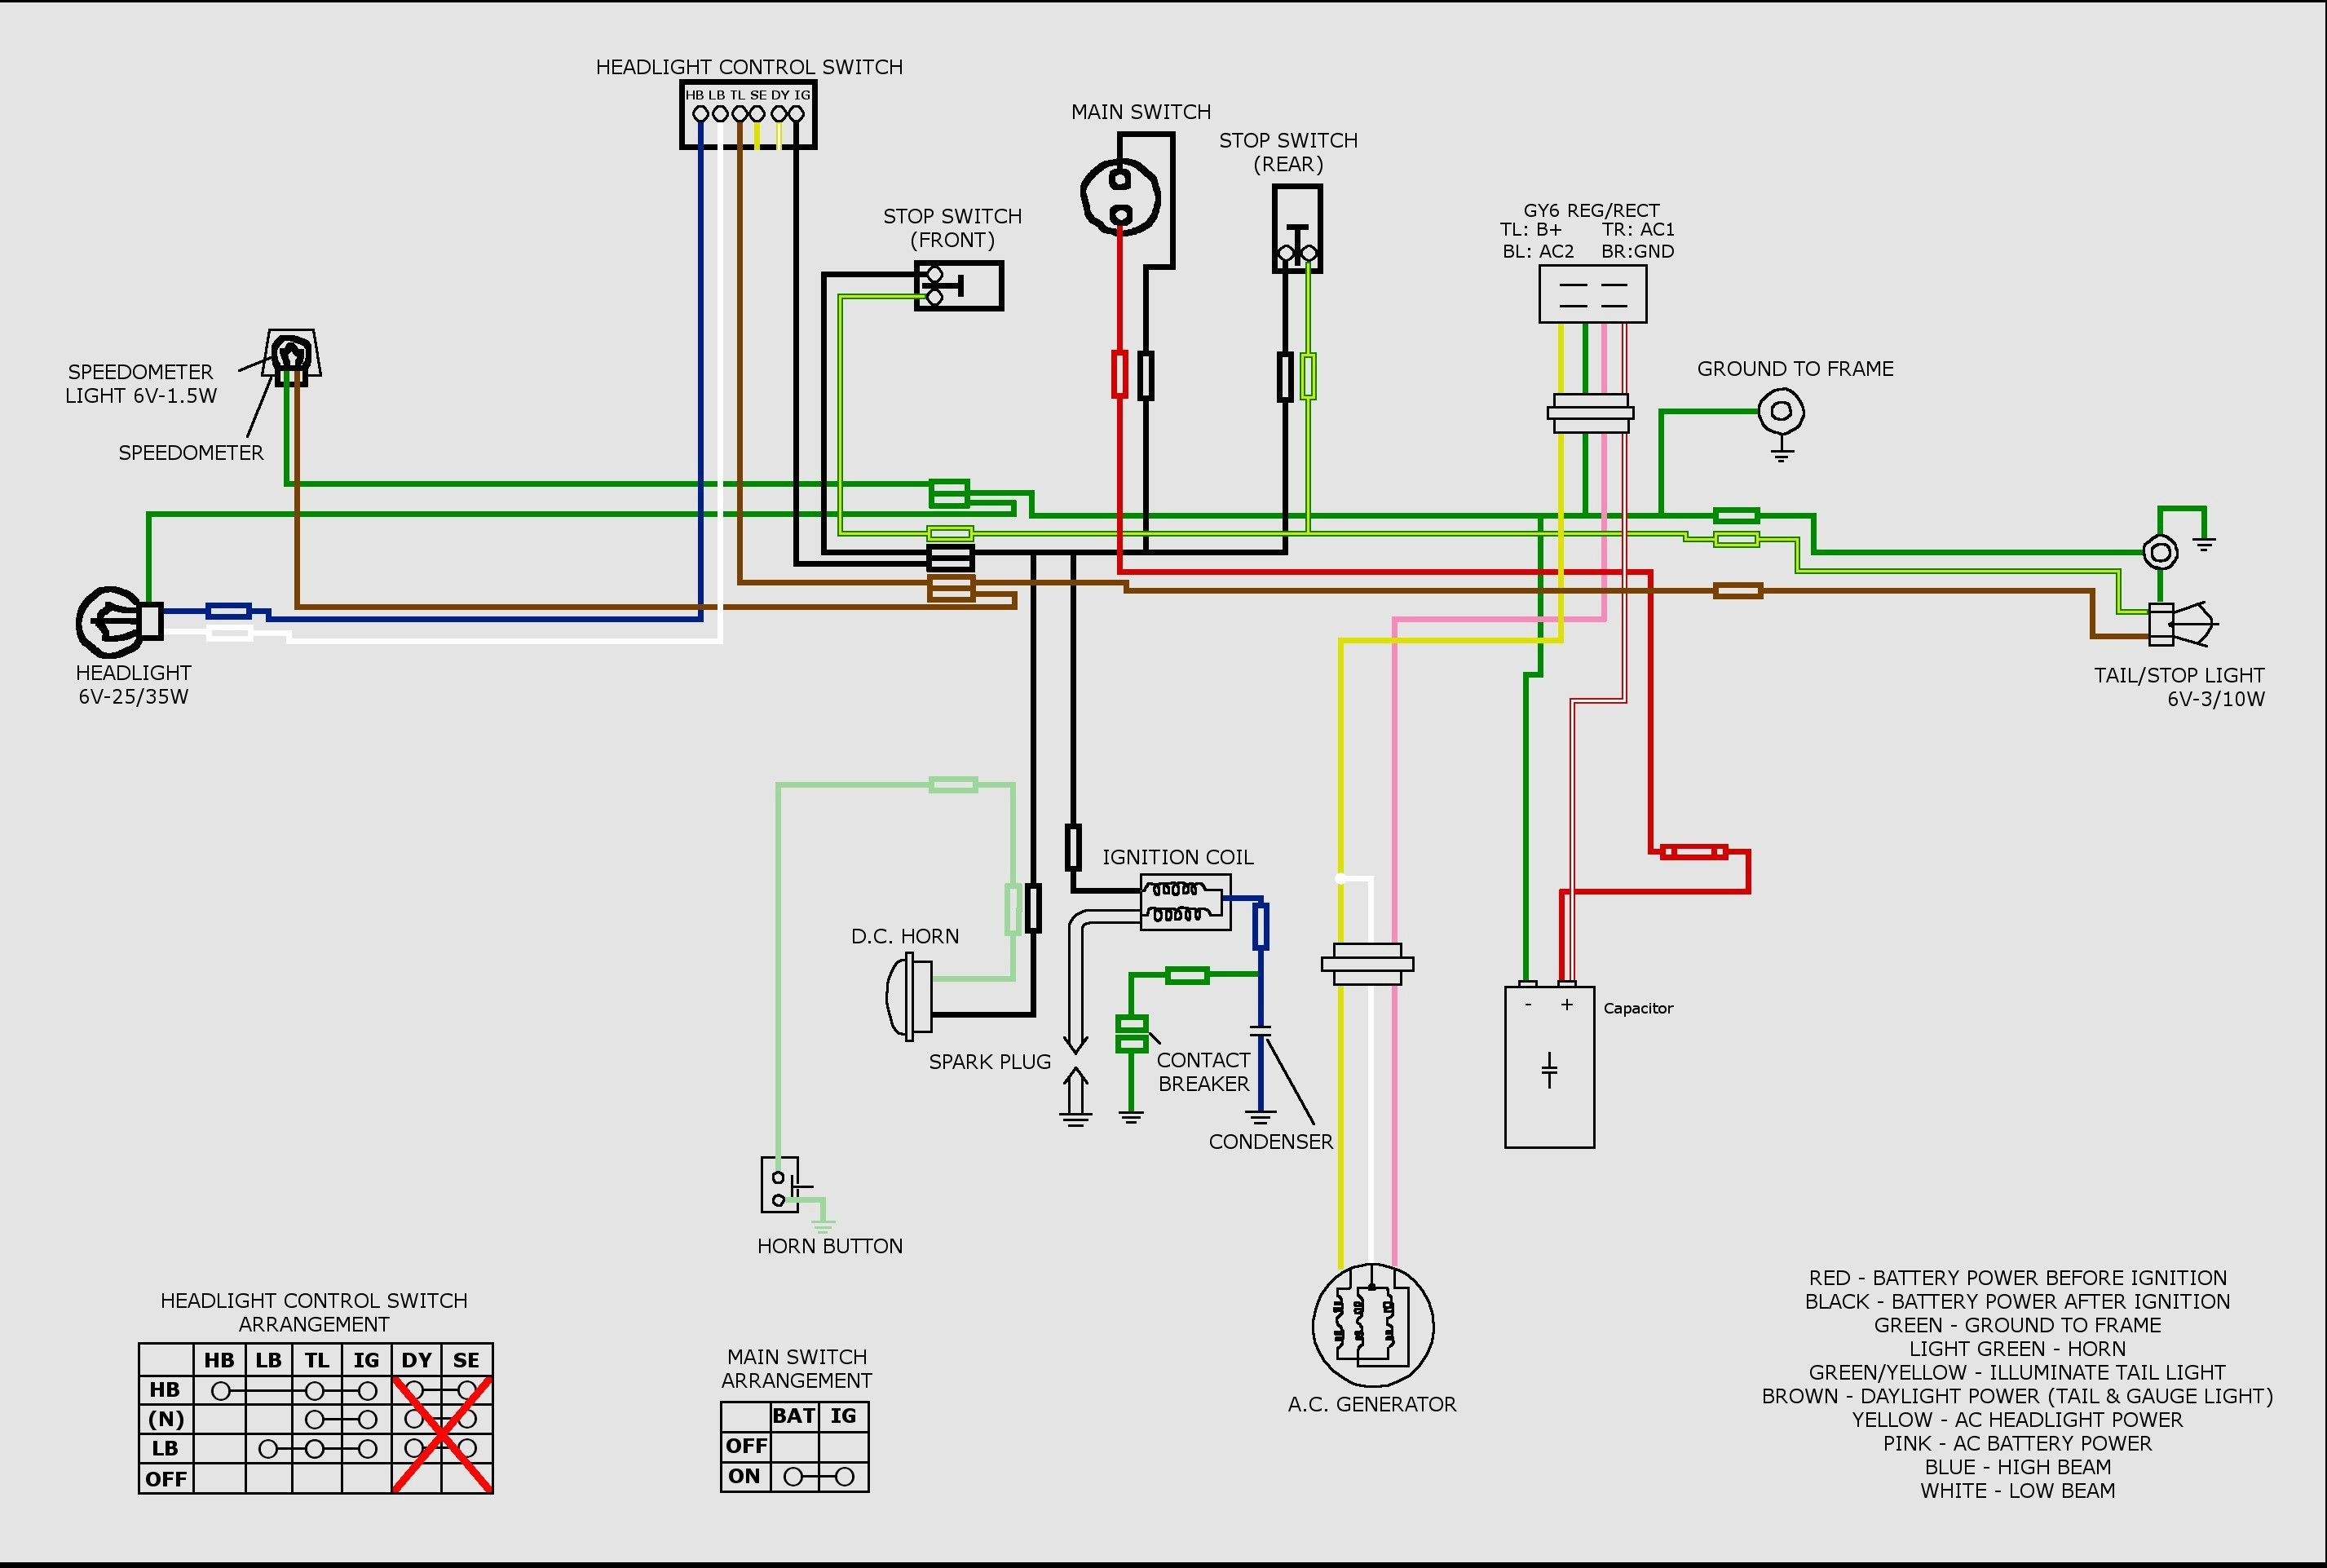 Brilliant Gy6 Lighting Diagram Wiring Diagram Data Wiring Cloud Photboapumohammedshrineorg